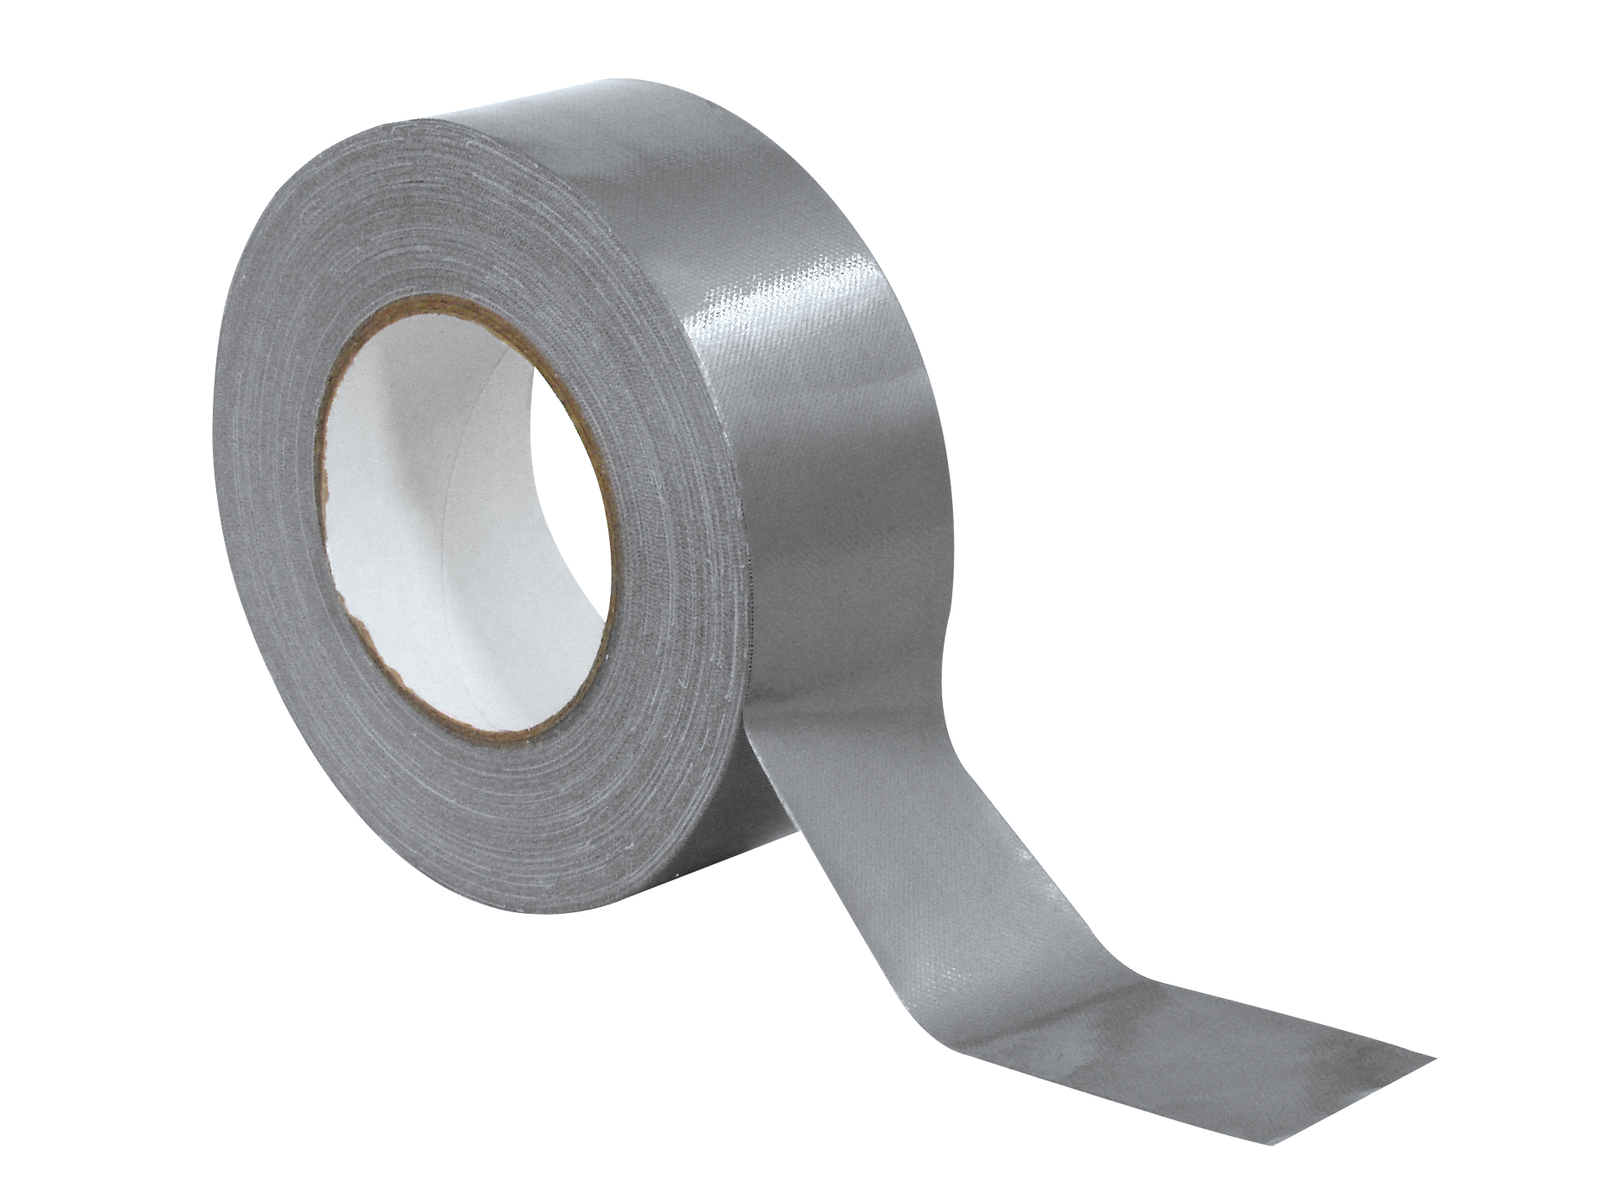 ACCESSORIO ai gaffa Tape Pro 50mm x 50m argento